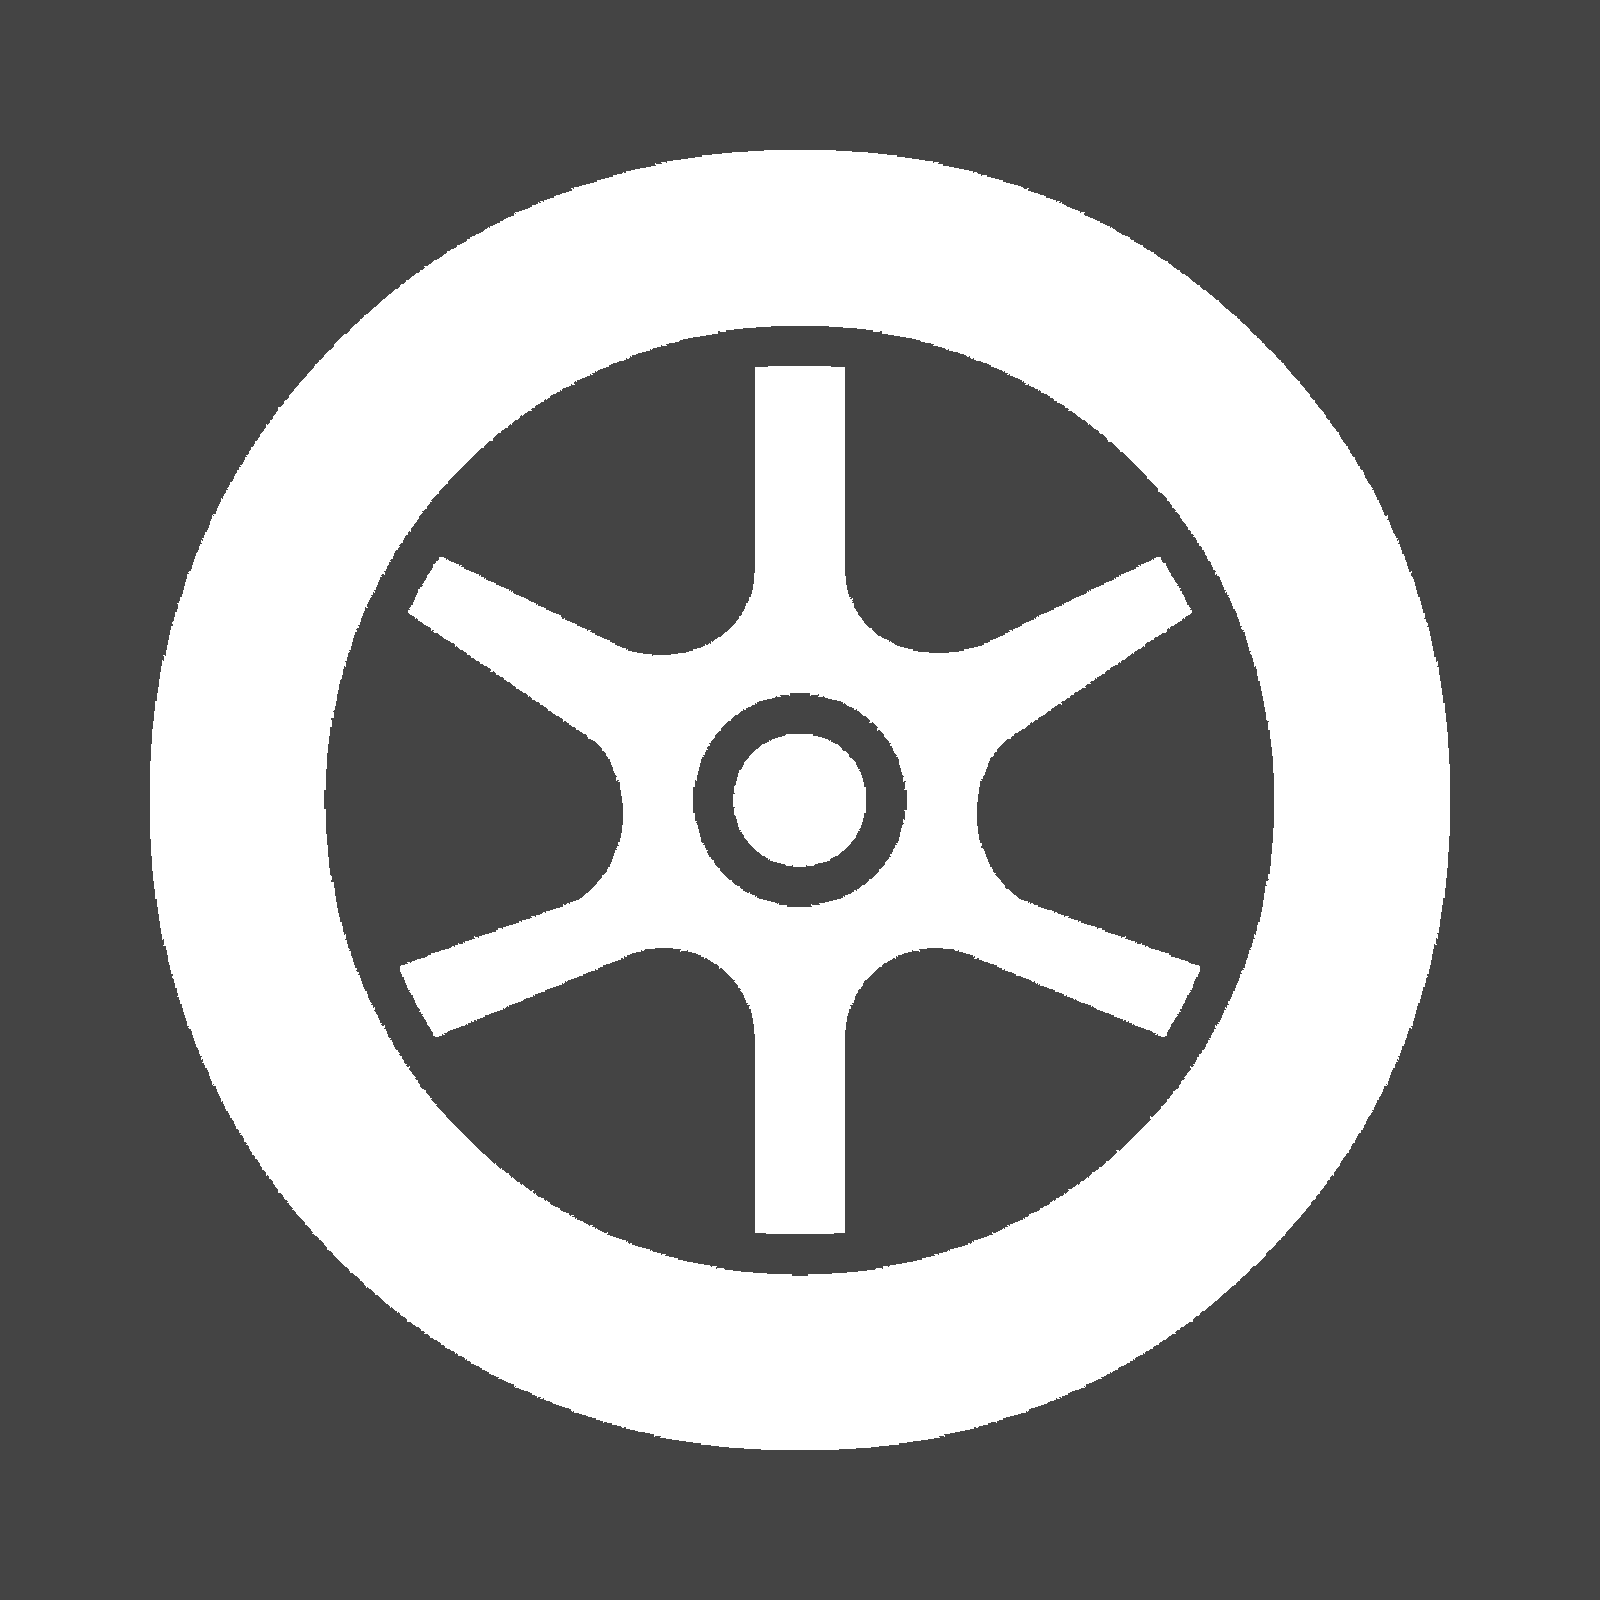 Icon of a wheel with tire and rim